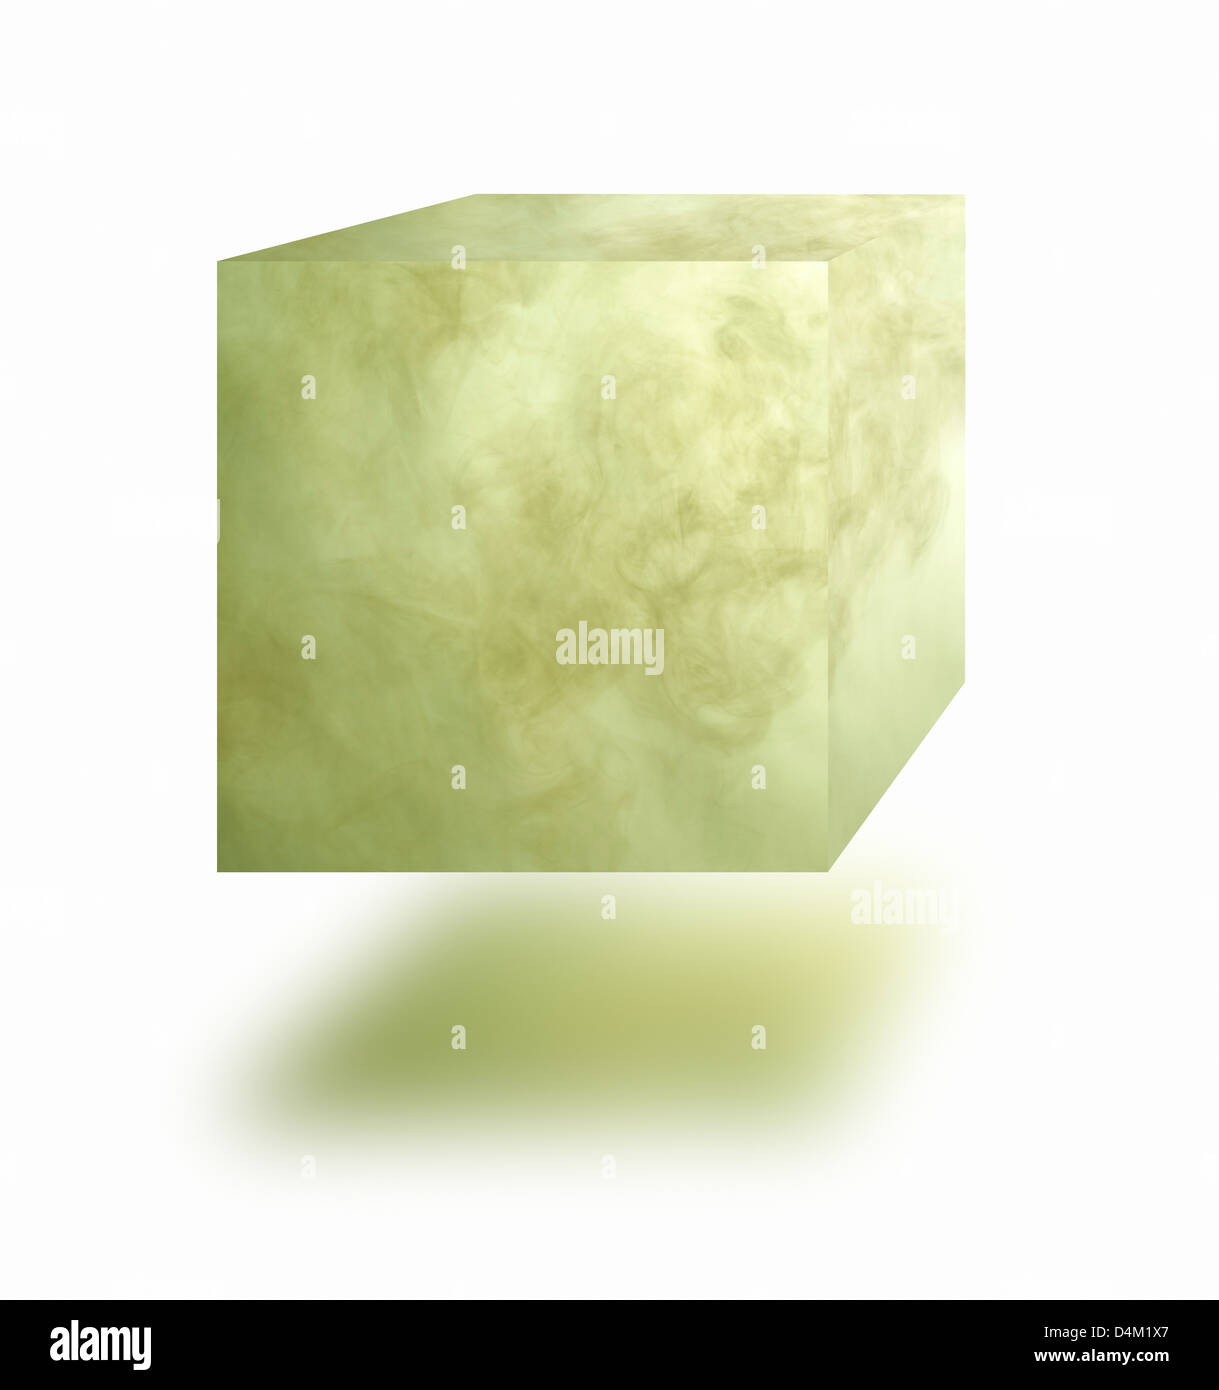 Poisonous gas cube floating in air over white background Stock Photo